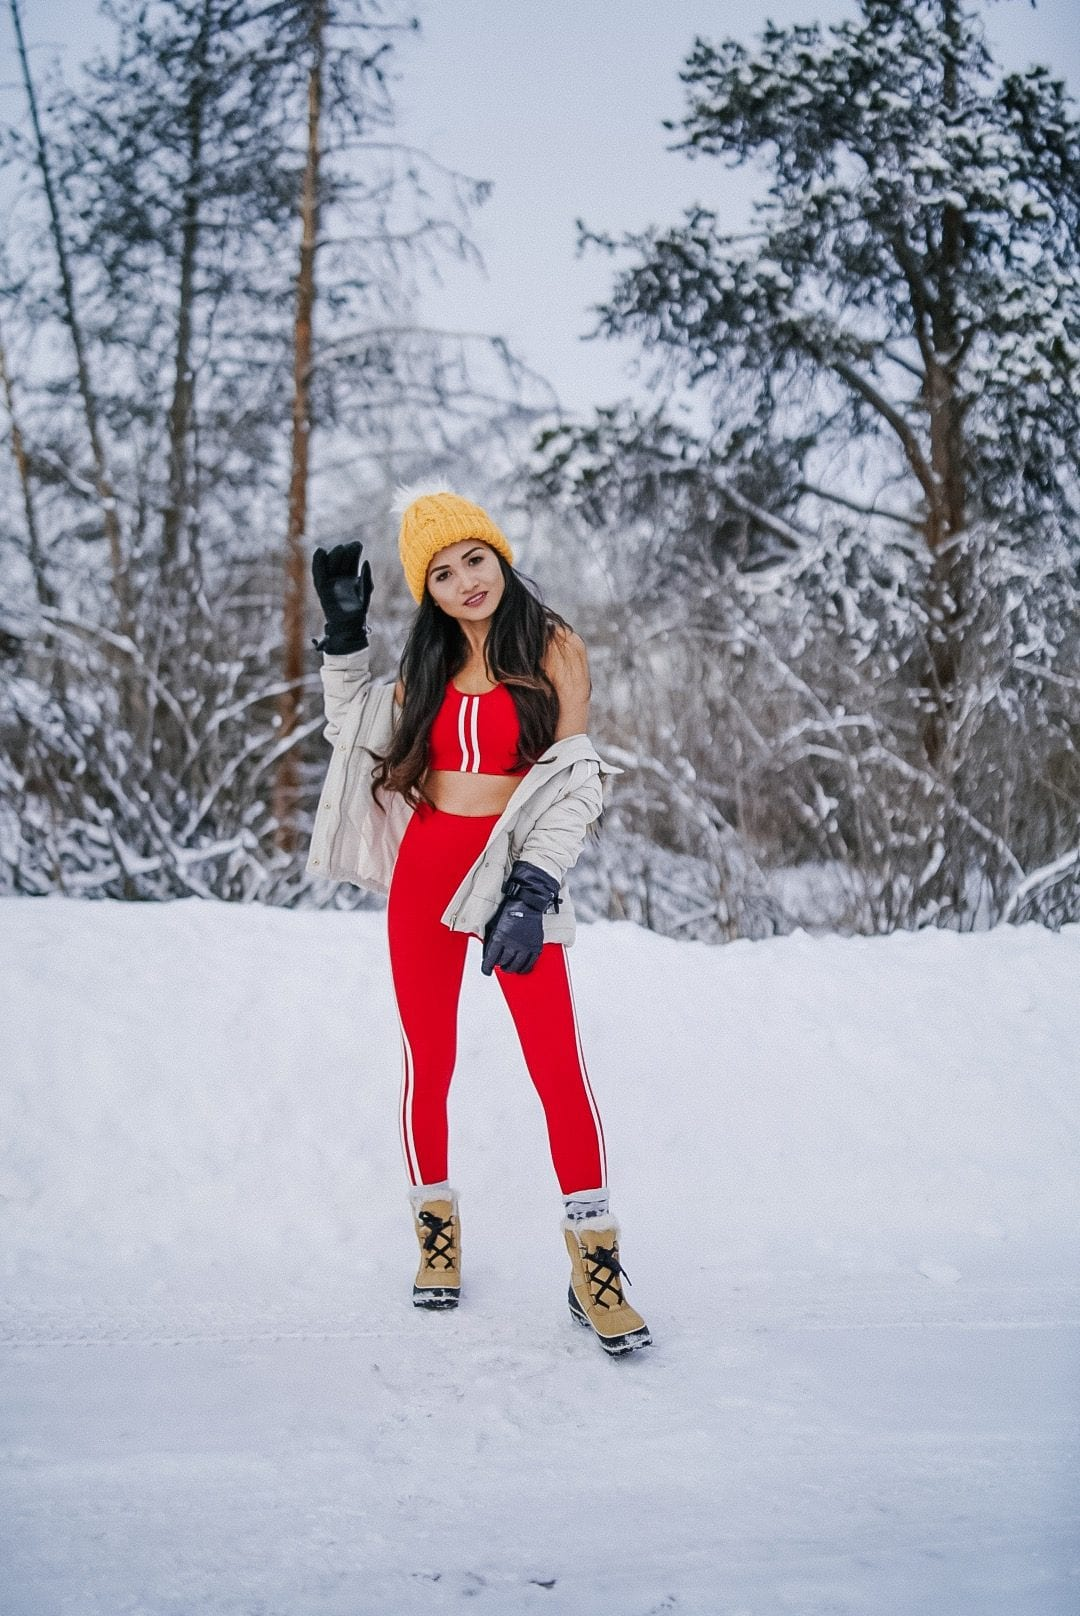 ski clothes, snowboarding outfit, winter workout outfit, fitness style